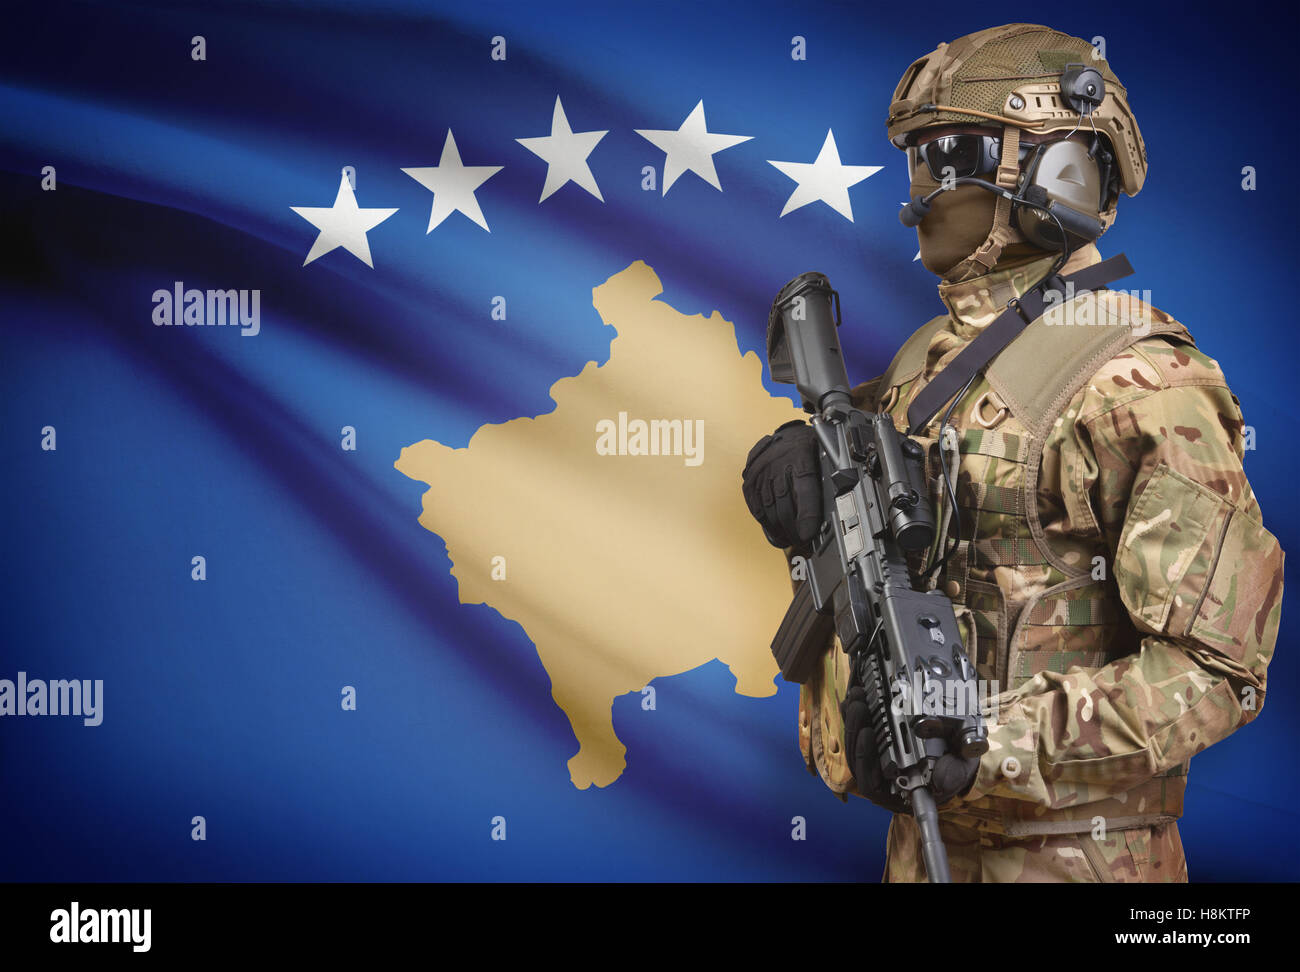 Soldier in helmet holding machine gun with national flag on background - Kosovo Stock Photo